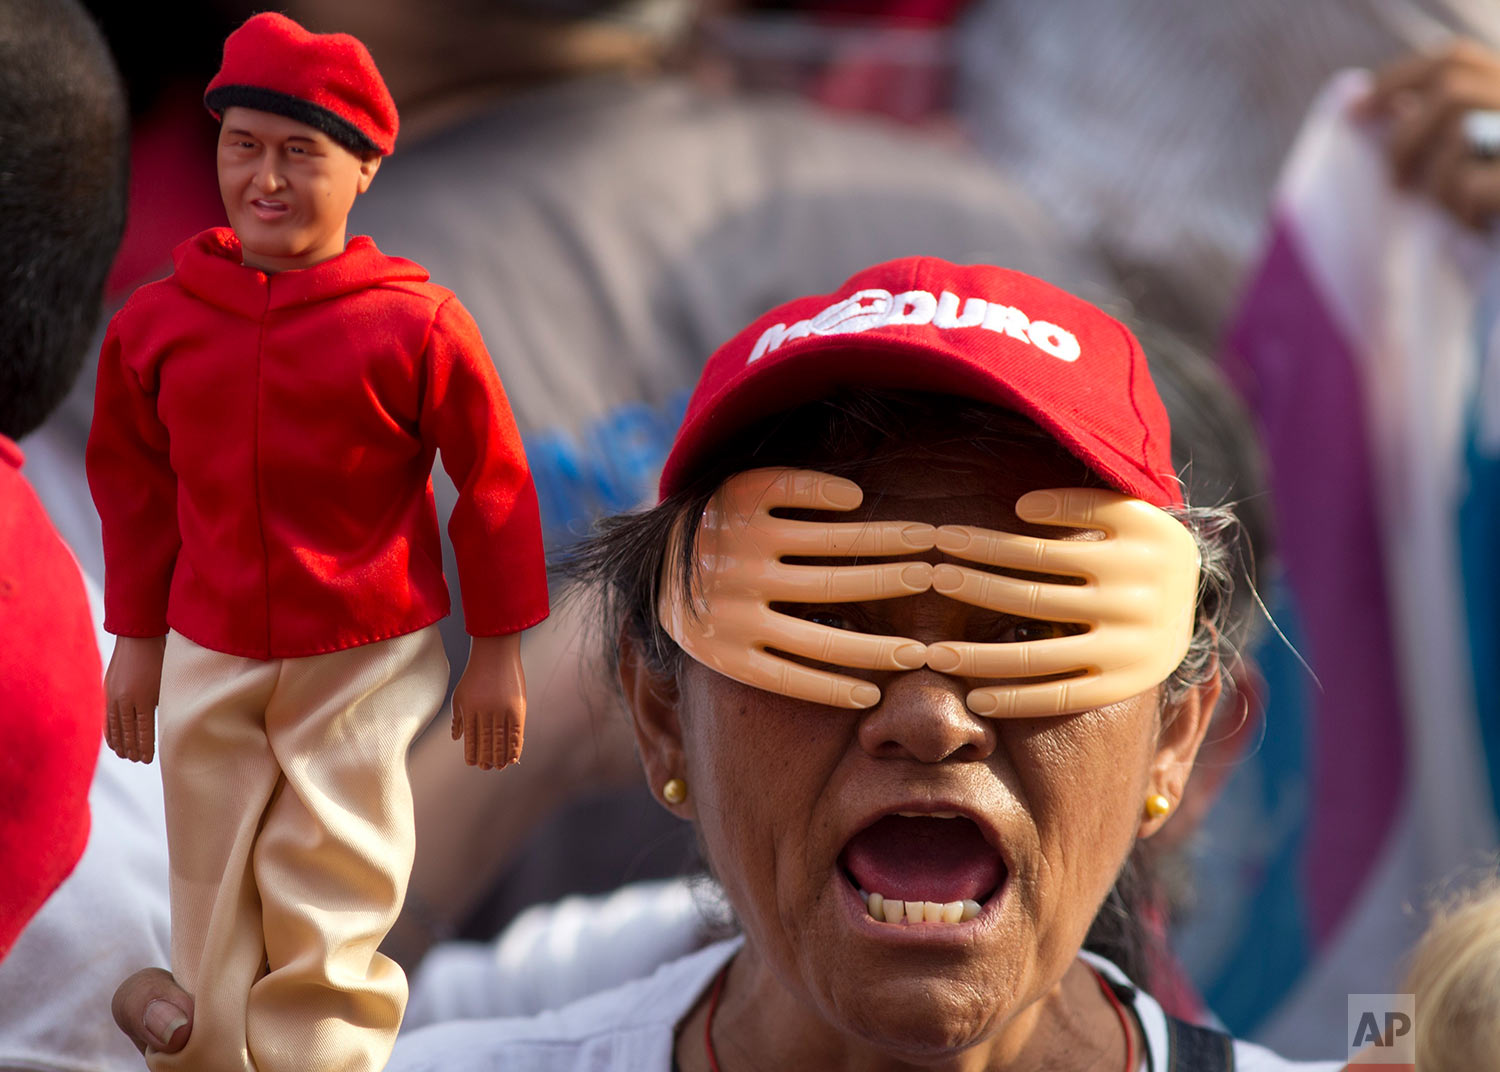 A government supporter holding a doll of Venezuela's late President Hugo Chavez wears a set of plastic hands over her eyes, at a presidential campaign rally for current President Nicolas Maduro in Caracas, Venezuela, Friday, May 4, 2018.  The election registered the lowest turnout in decades — around 46 percent — as many voters stayed home while the opposition warned the election was rigged. (AP Photo/Ariana Cubillos)